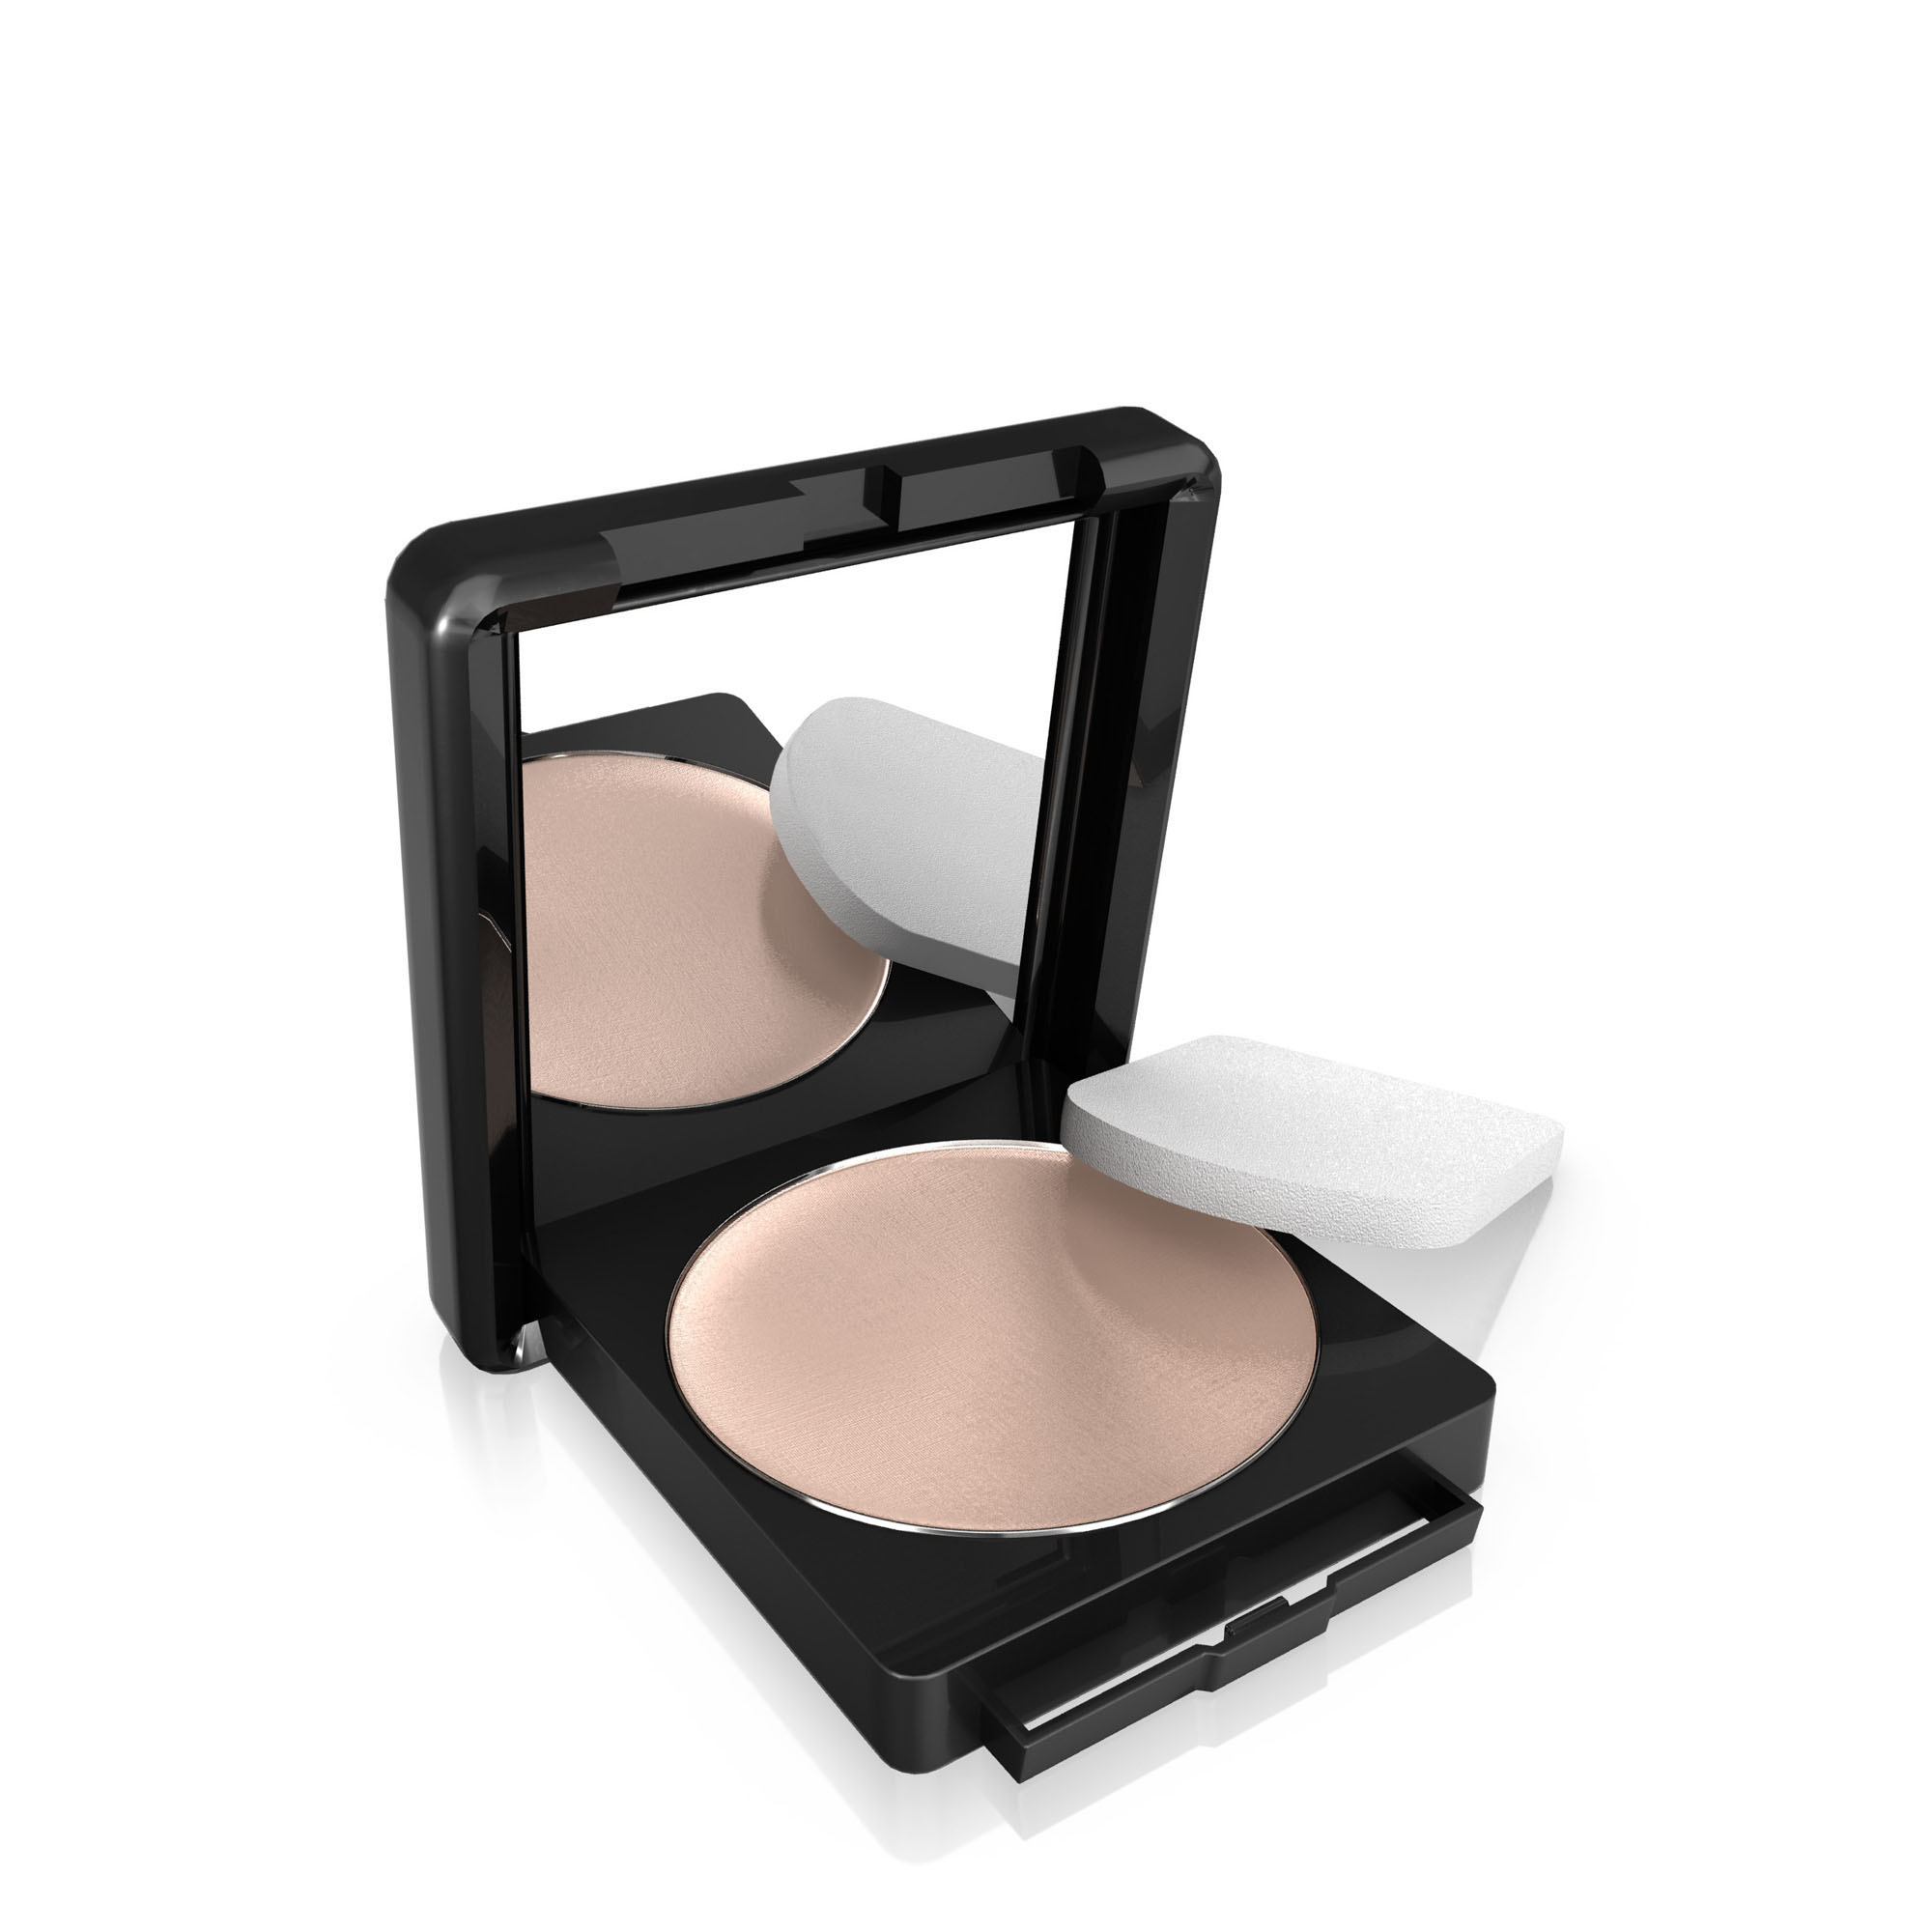 COVERGIRL Clean Simply Powder Foundation, Natural Ivory